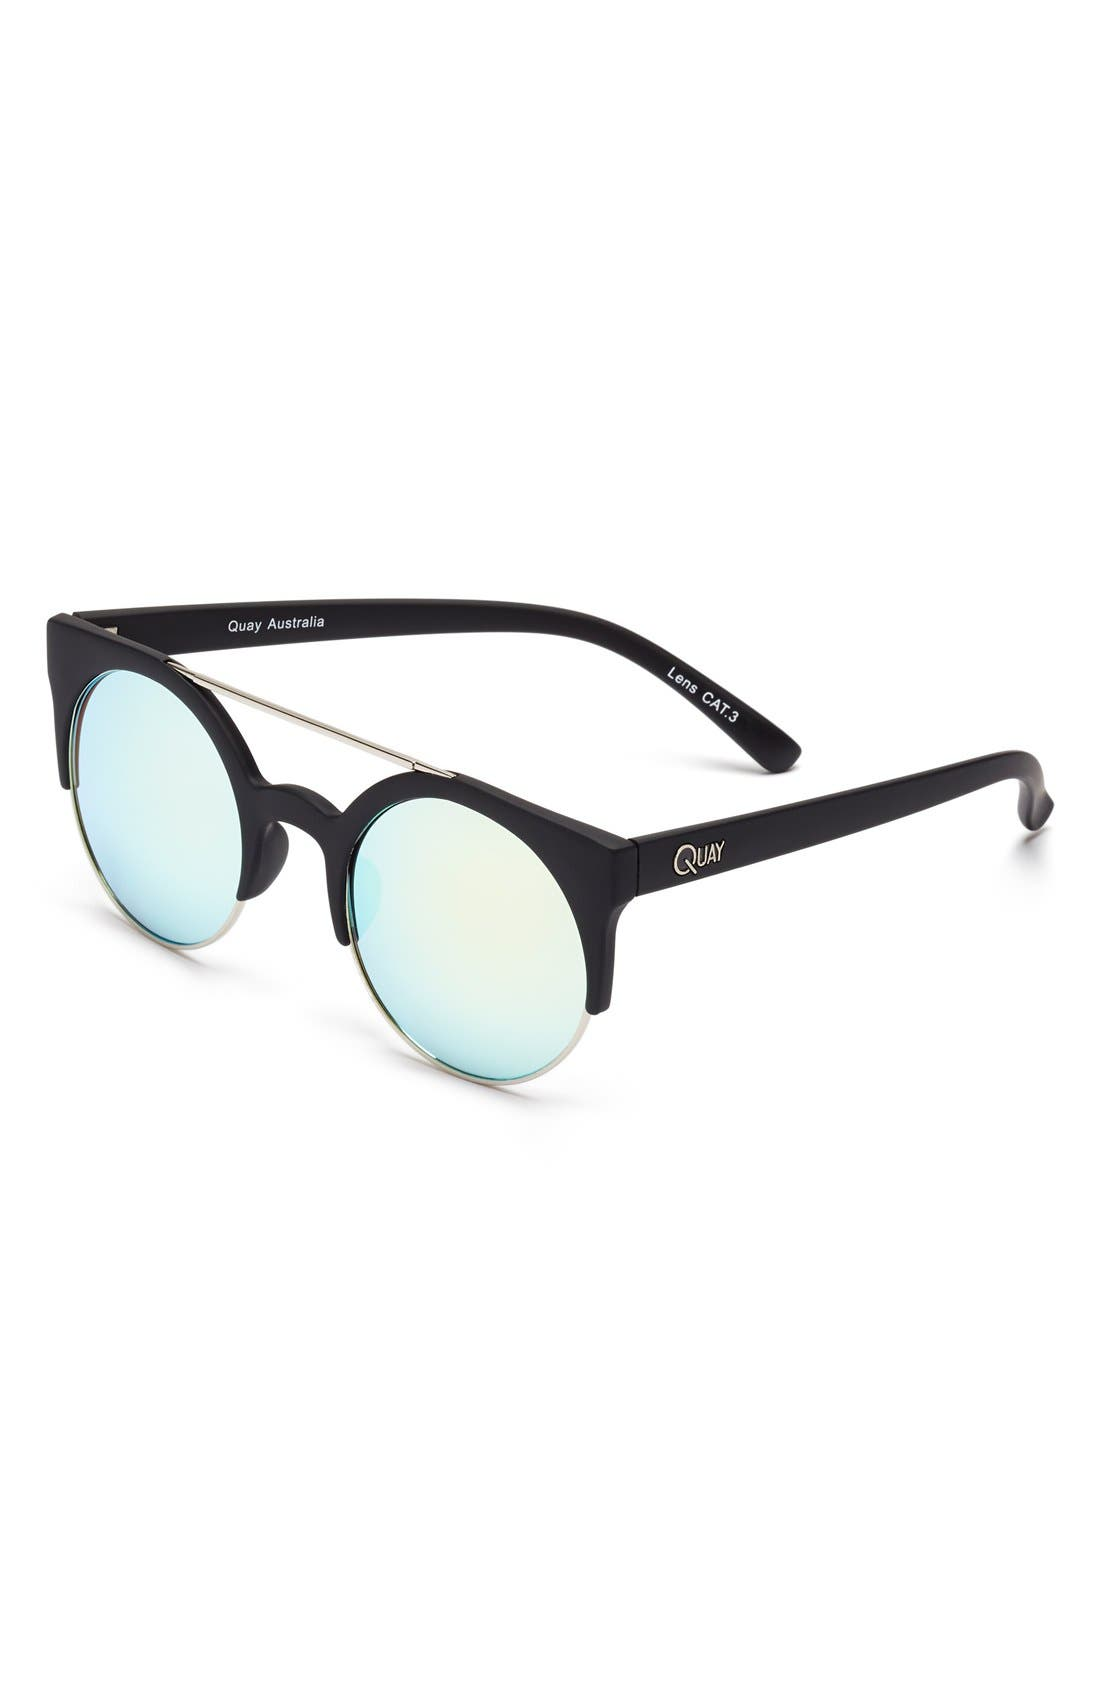 Main Image - Quay Australia 'Live Now' 50mm Cat Eye Sunglasses